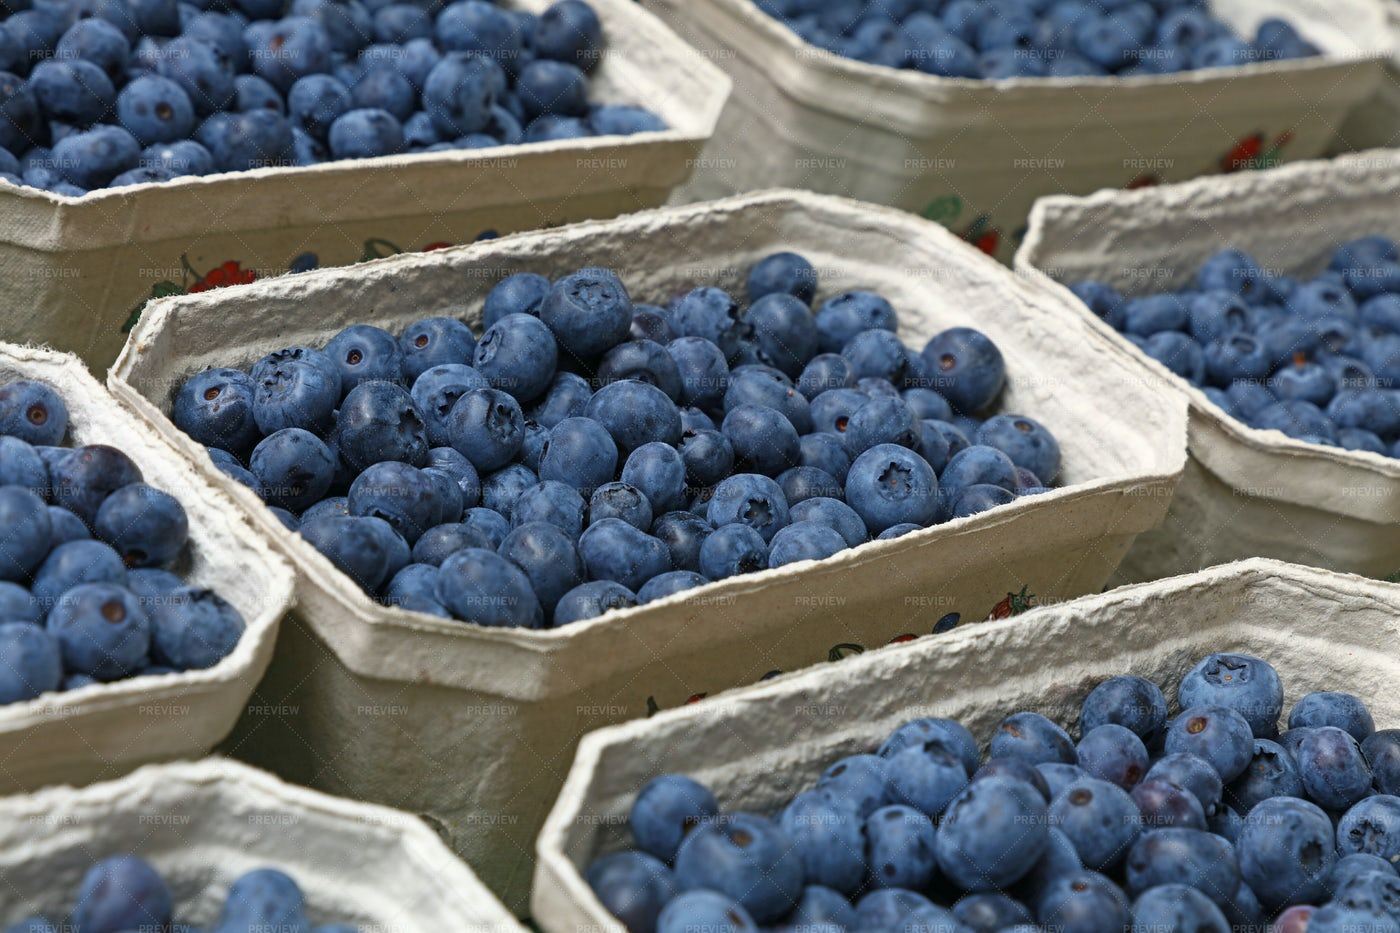 Fresh Blueberries For Sale: Stock Photos